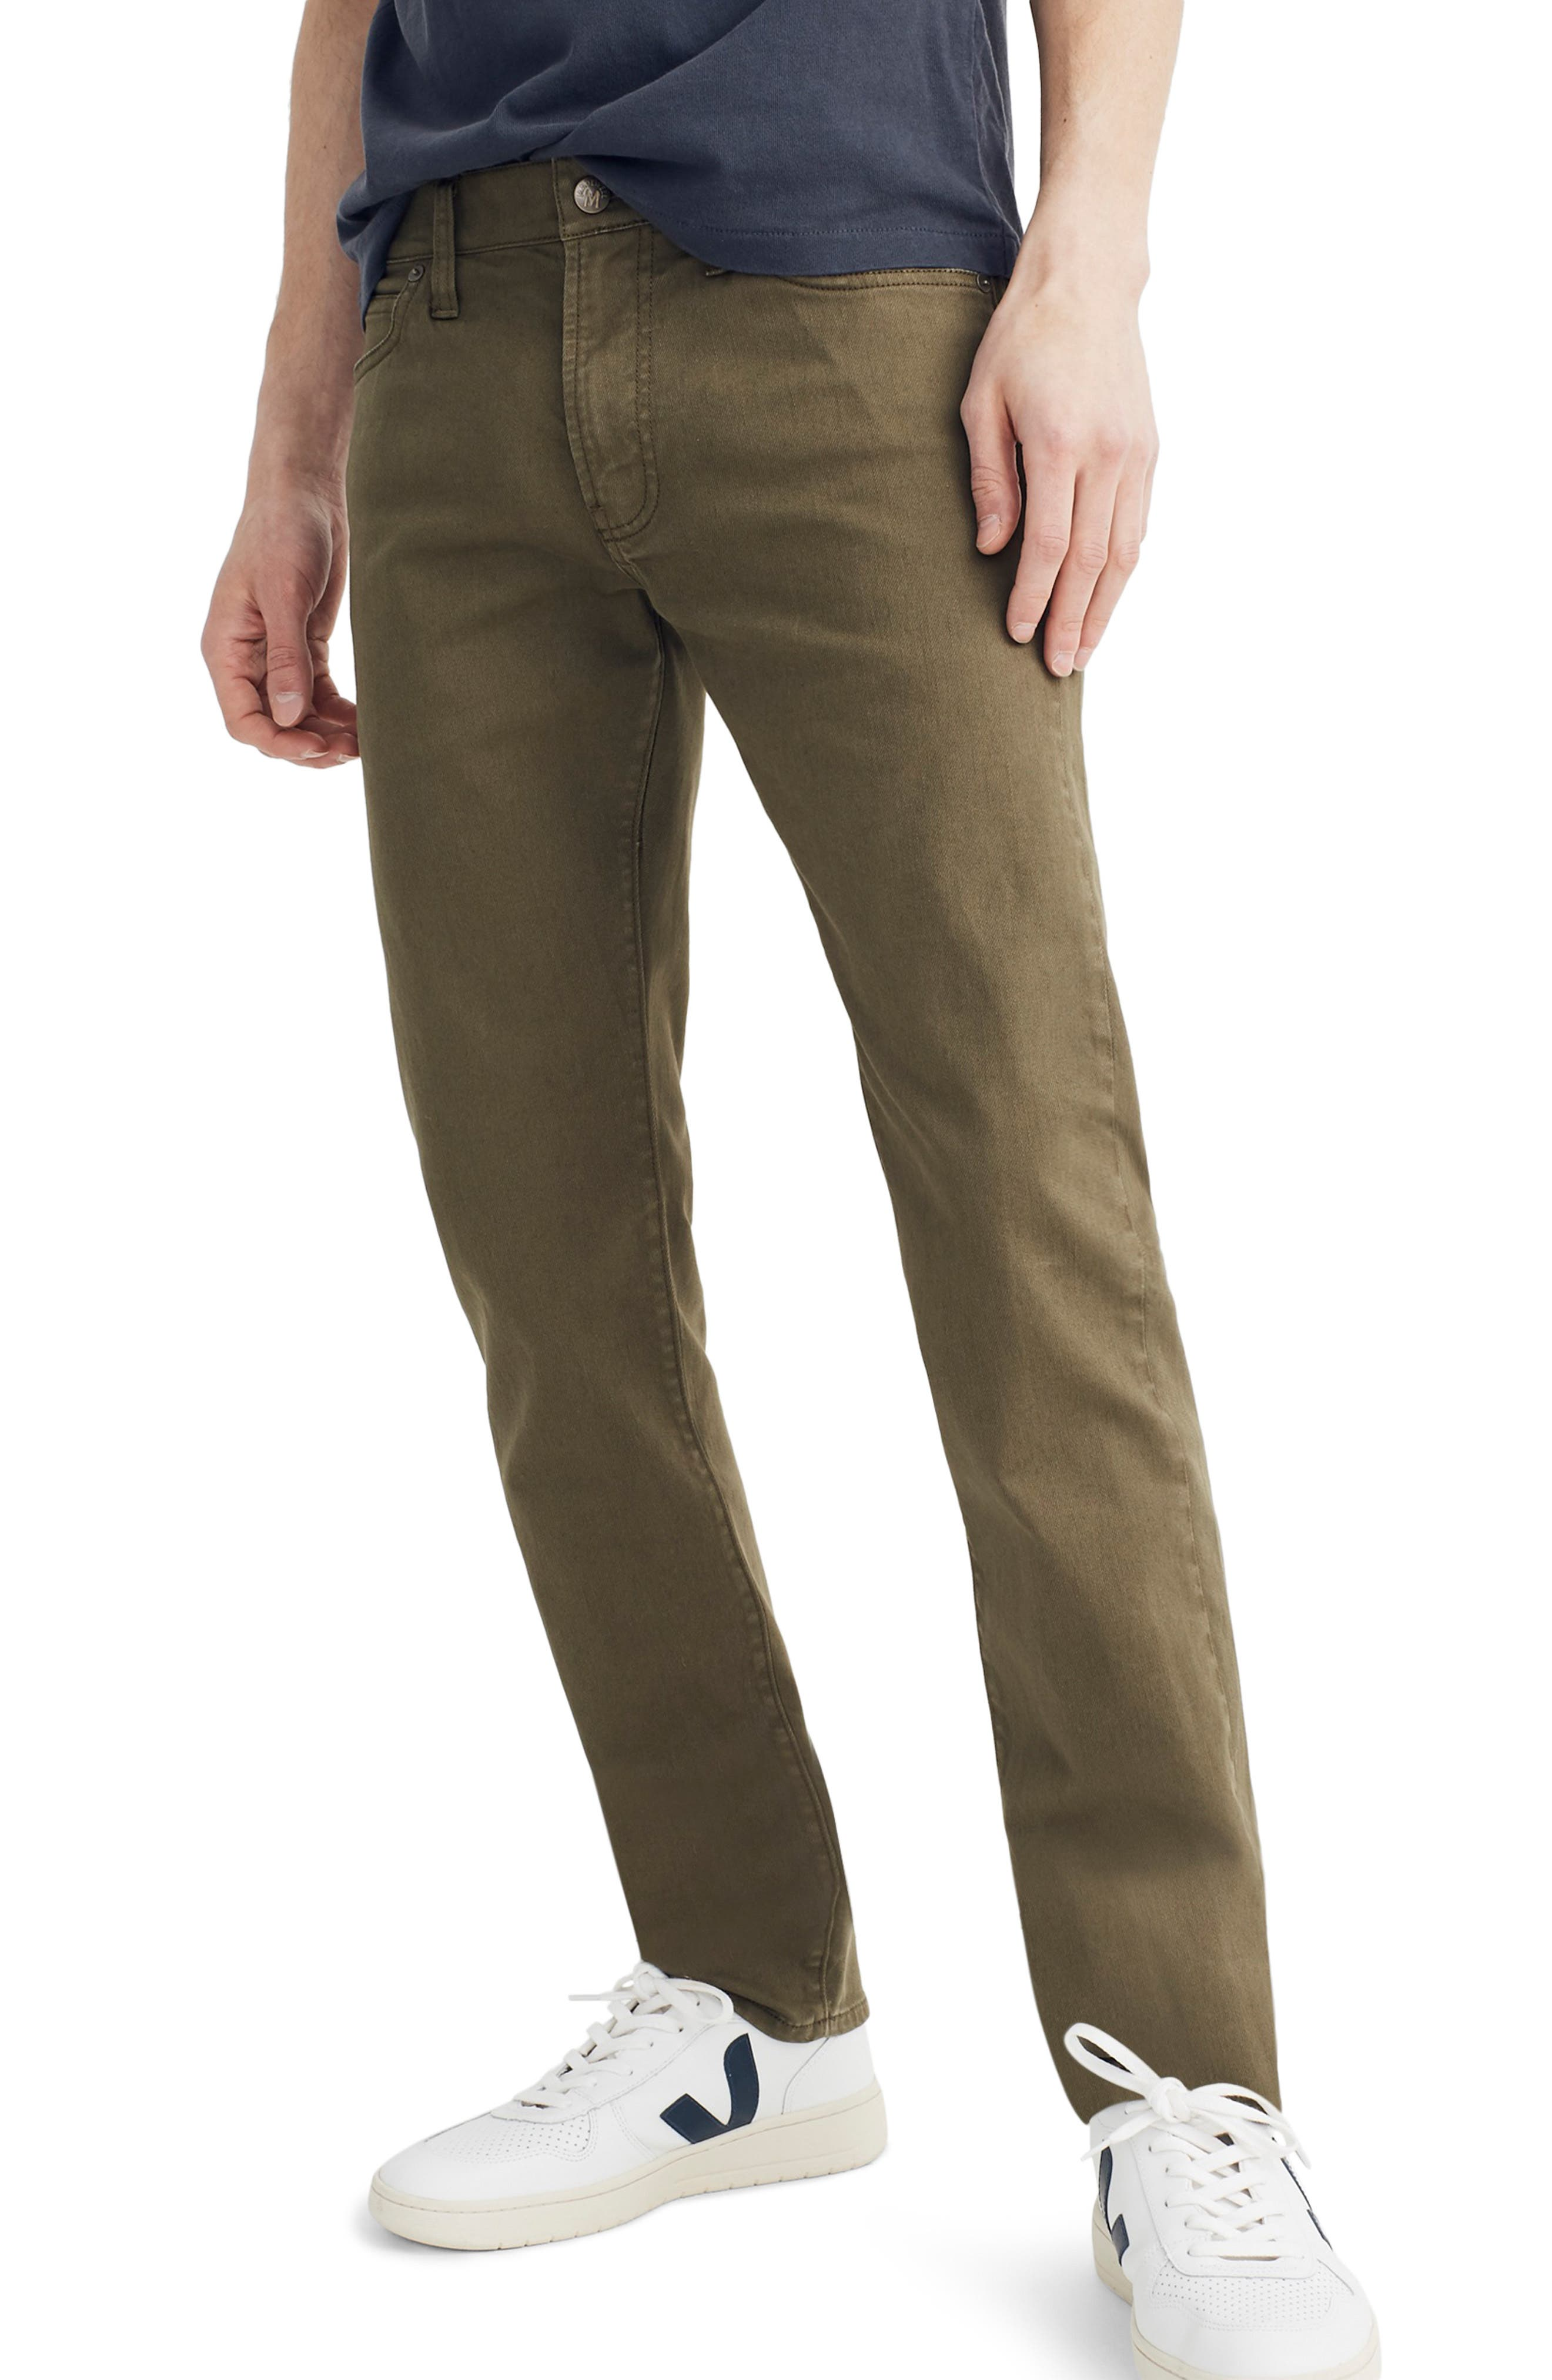 MADEWELL,                             Garment Dyed Slim Fit Jeans,                             Main thumbnail 1, color,                             FADED IVY